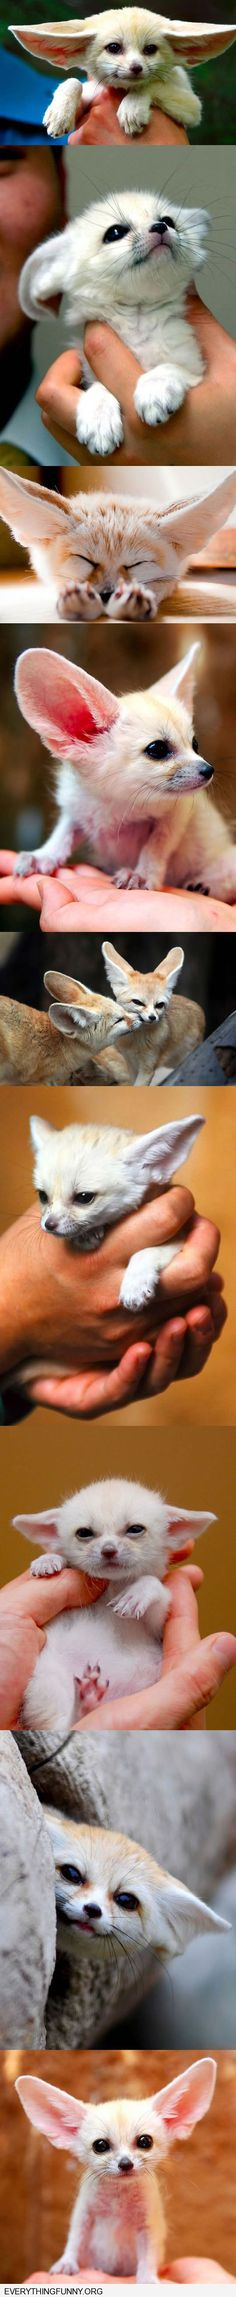 Possibly Cutest Animal That Ever Lived http://ibeebz.com